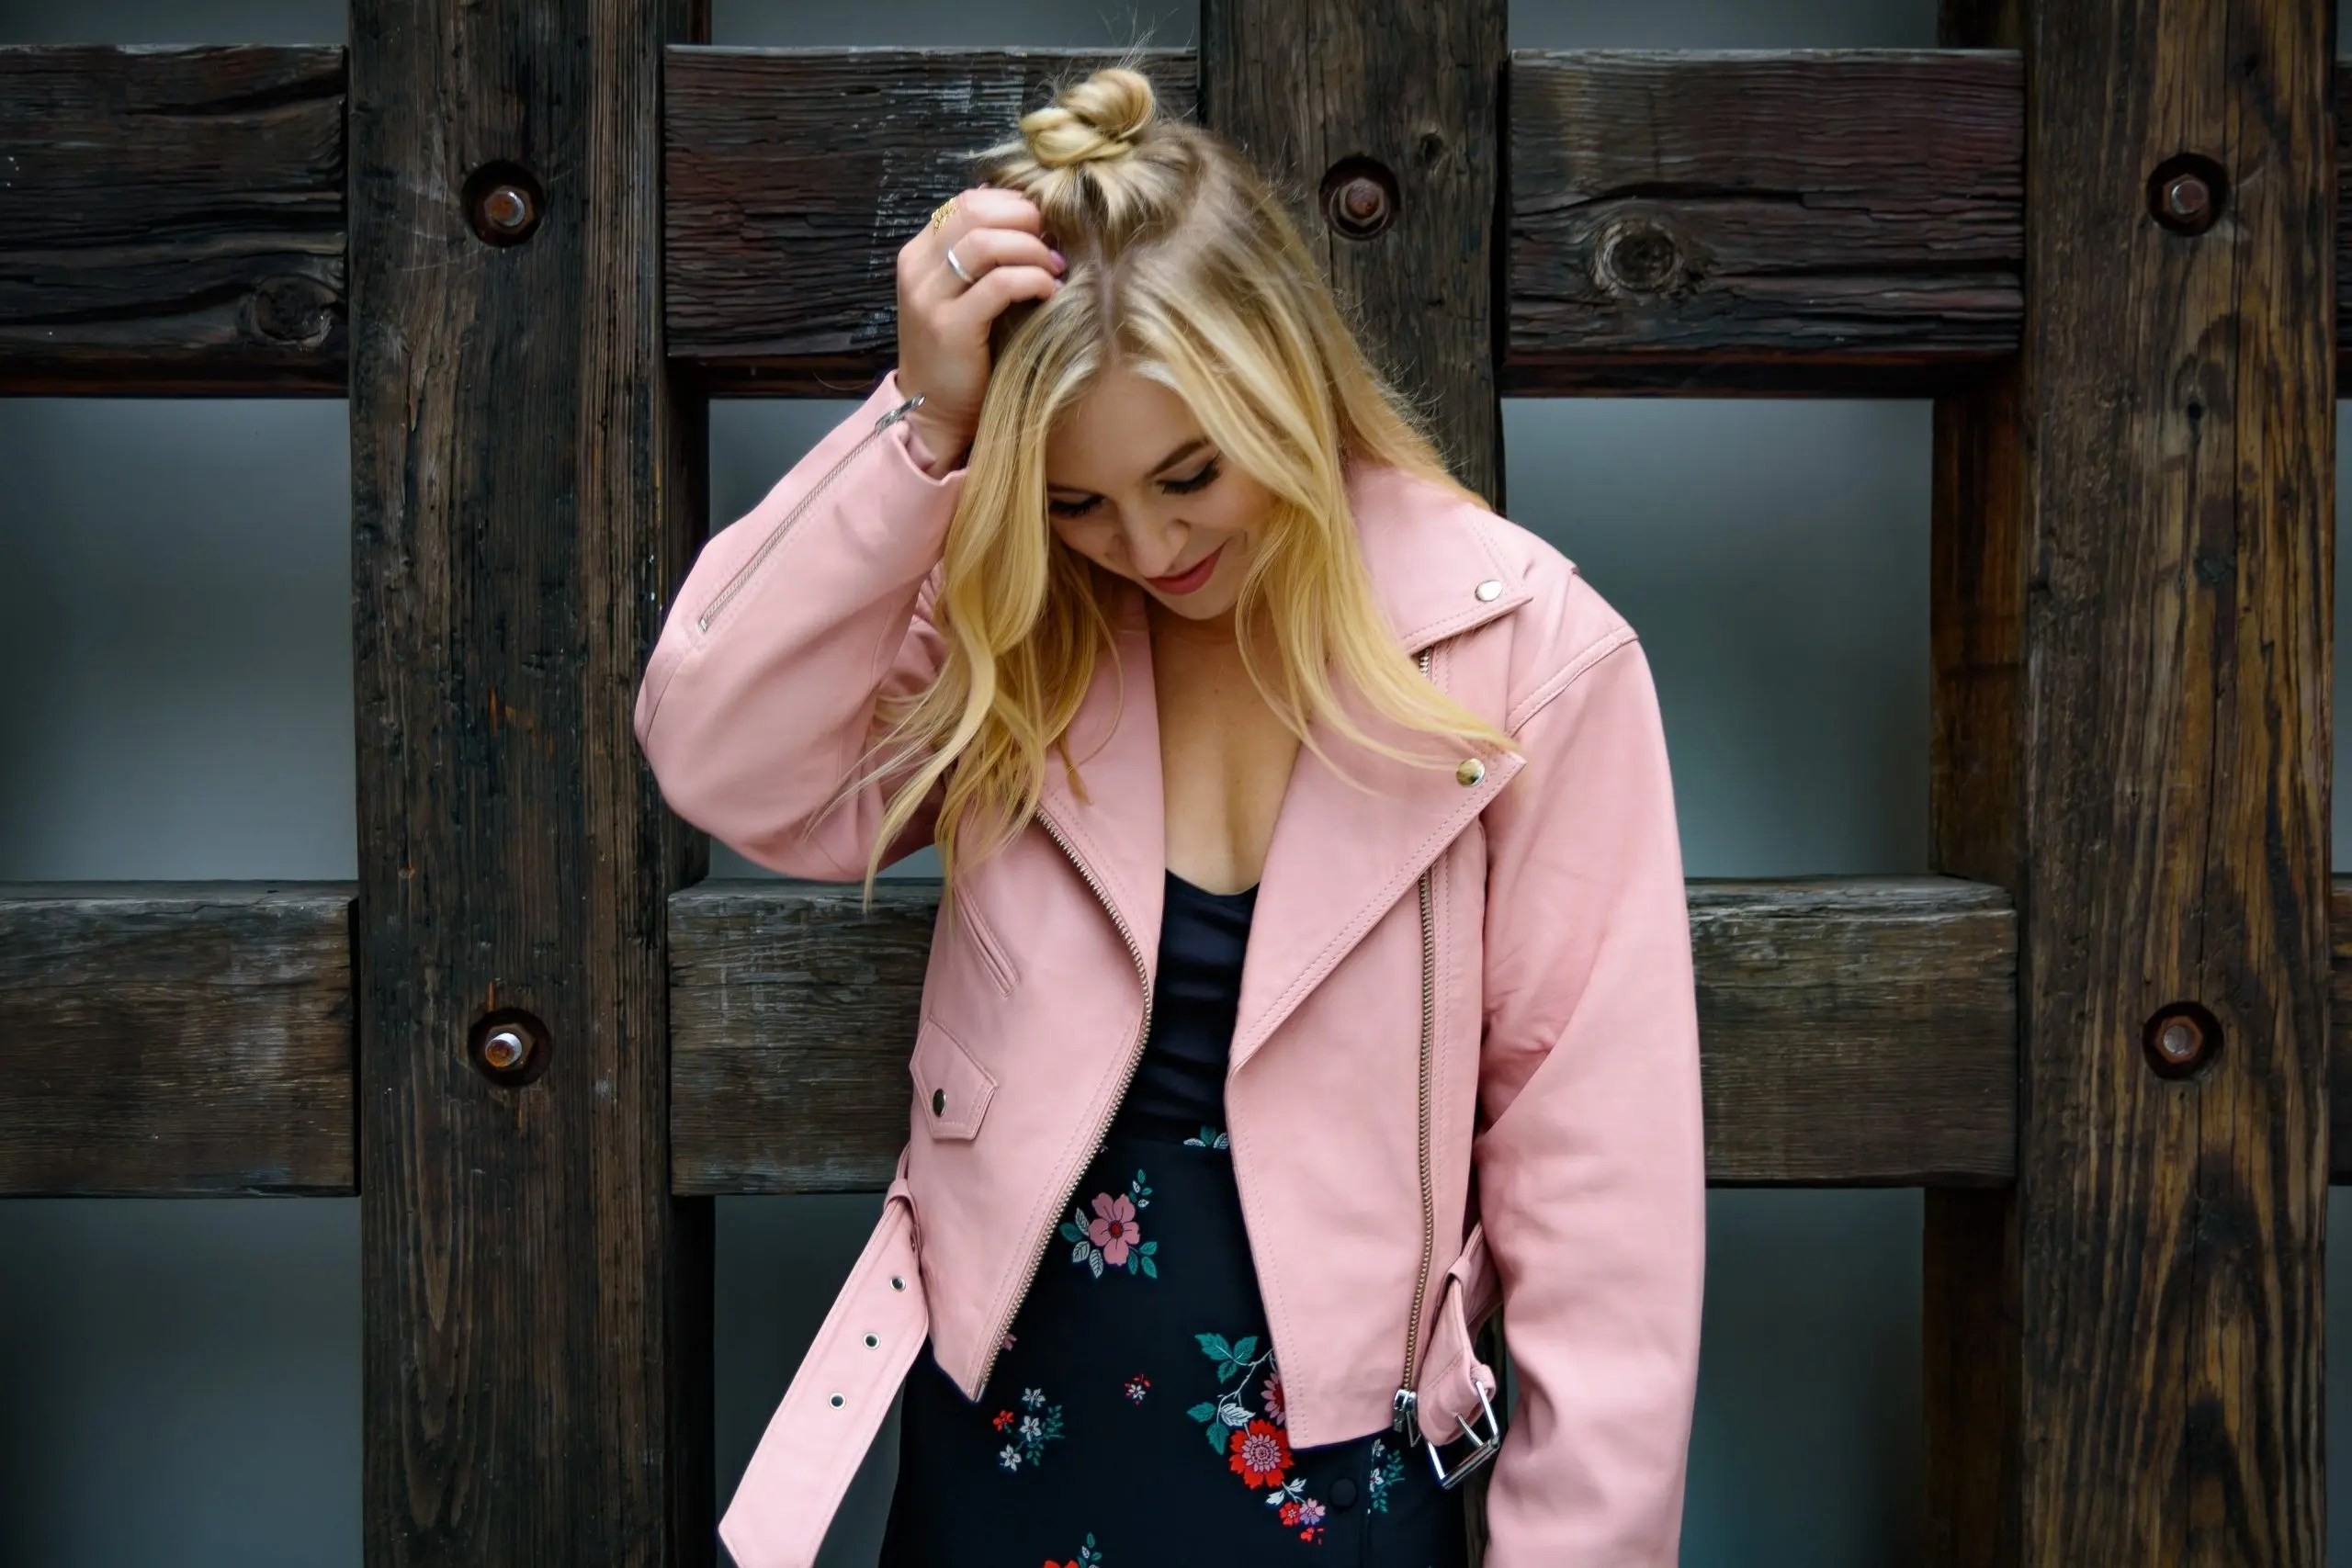 Model posing in front of wooden beams color contrasting with pink and dark blue hues of her outfit.